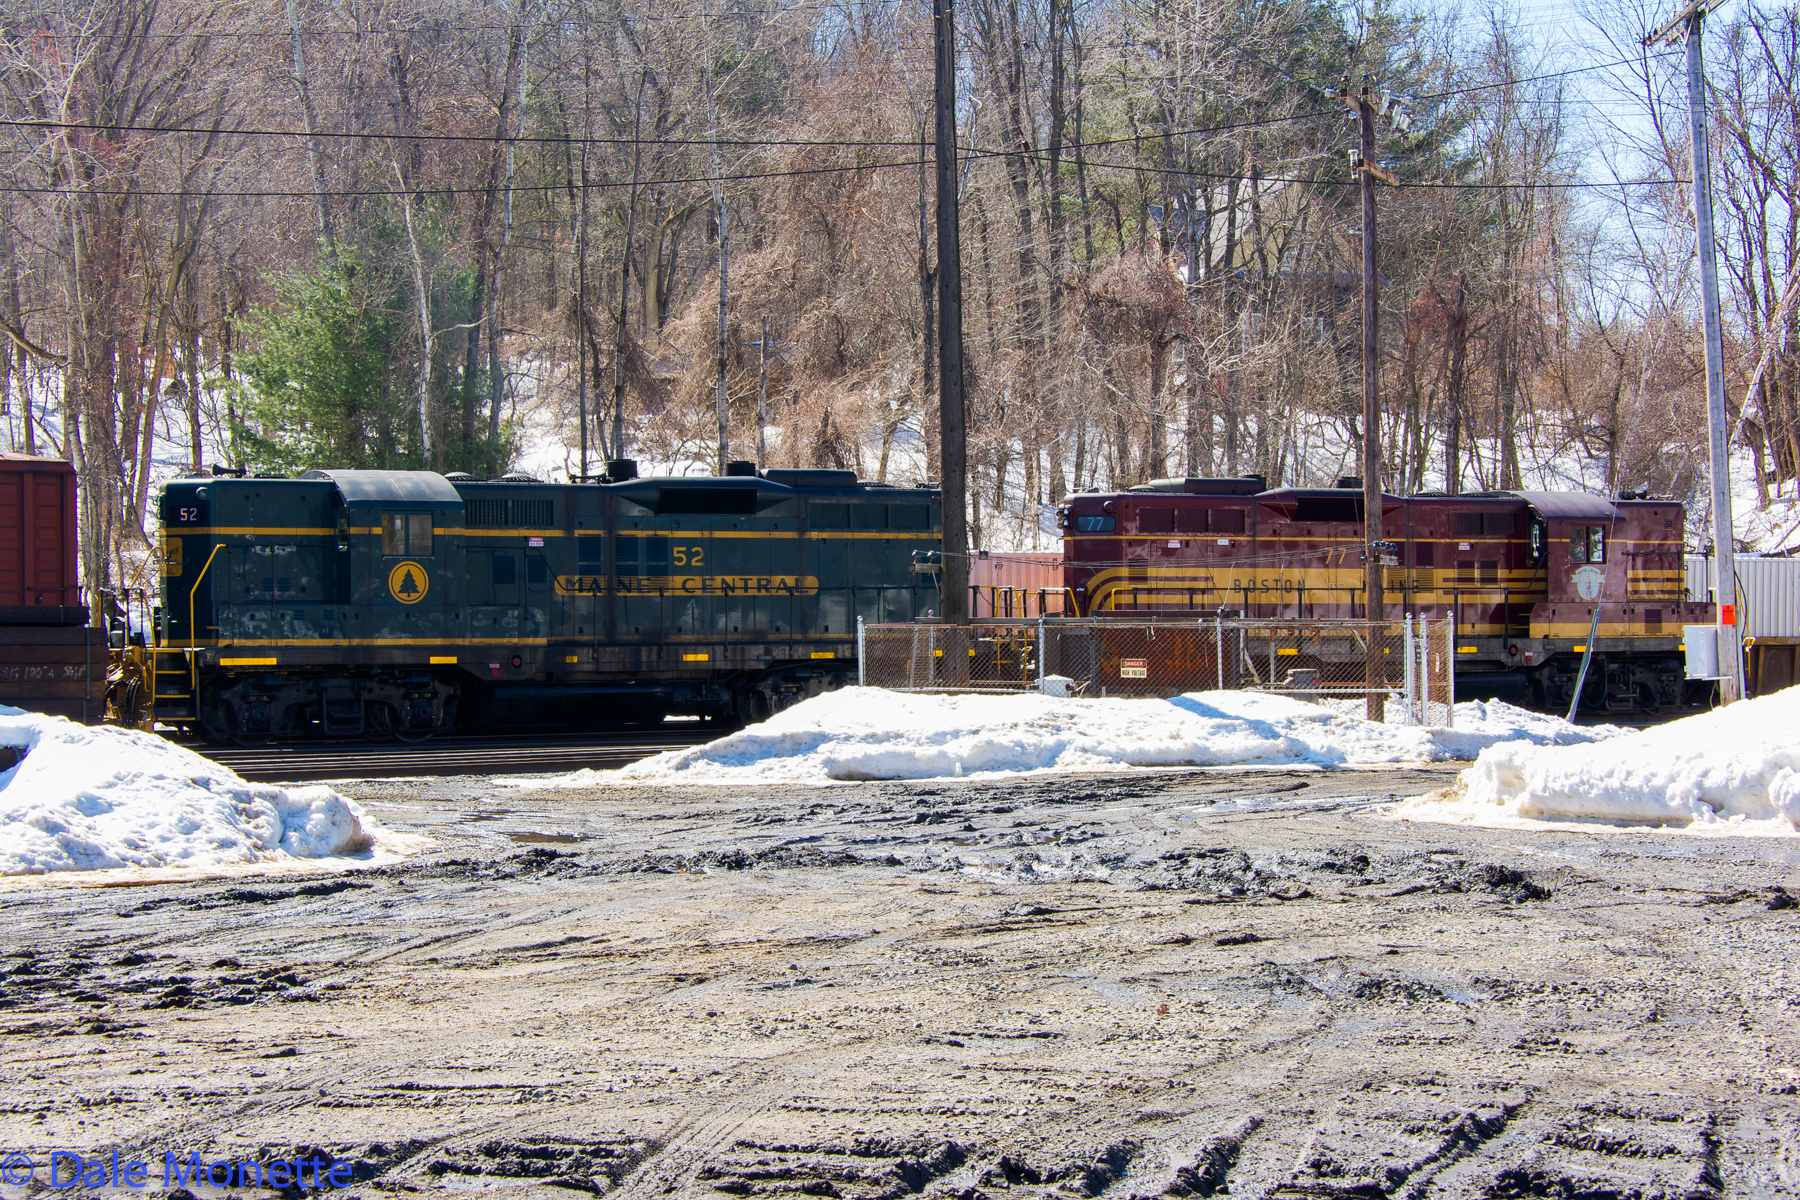 Here's both Alco's lashed together working the East Deerfield Pan Am train yard putting a train together.  3/12/15